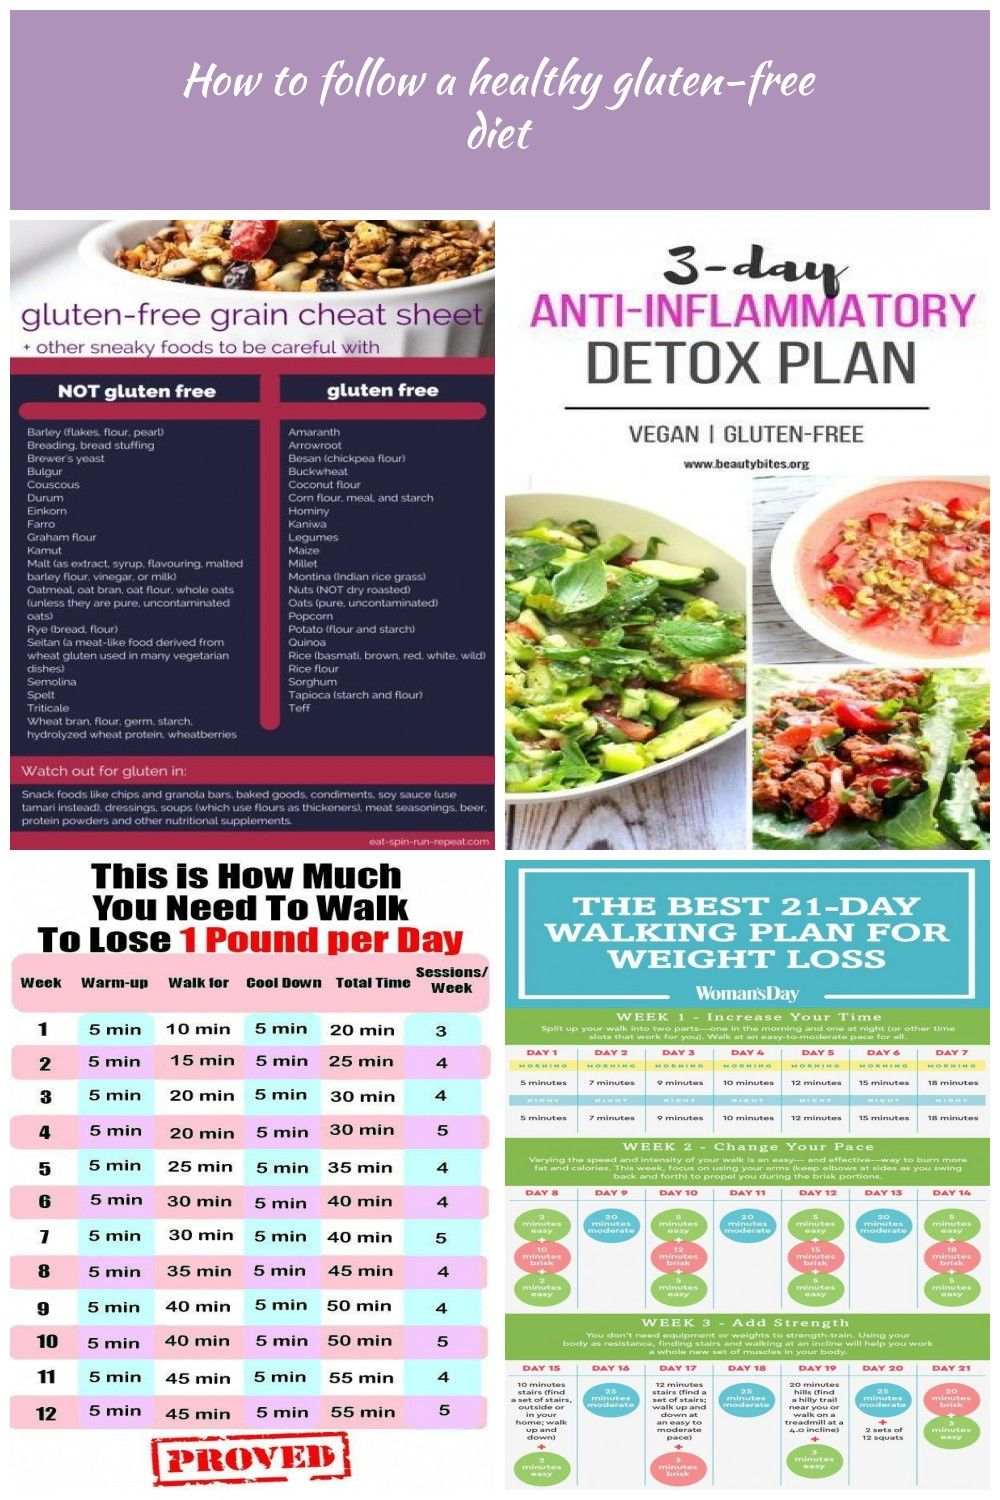 Tips For Following A Gluten Free Diet Easily And Properly Cheap Diet Plan How To Follow A Healthy Gluten Free Diet Cheap Diet Plans Gluten Free Diet Gluten Free Stuffing